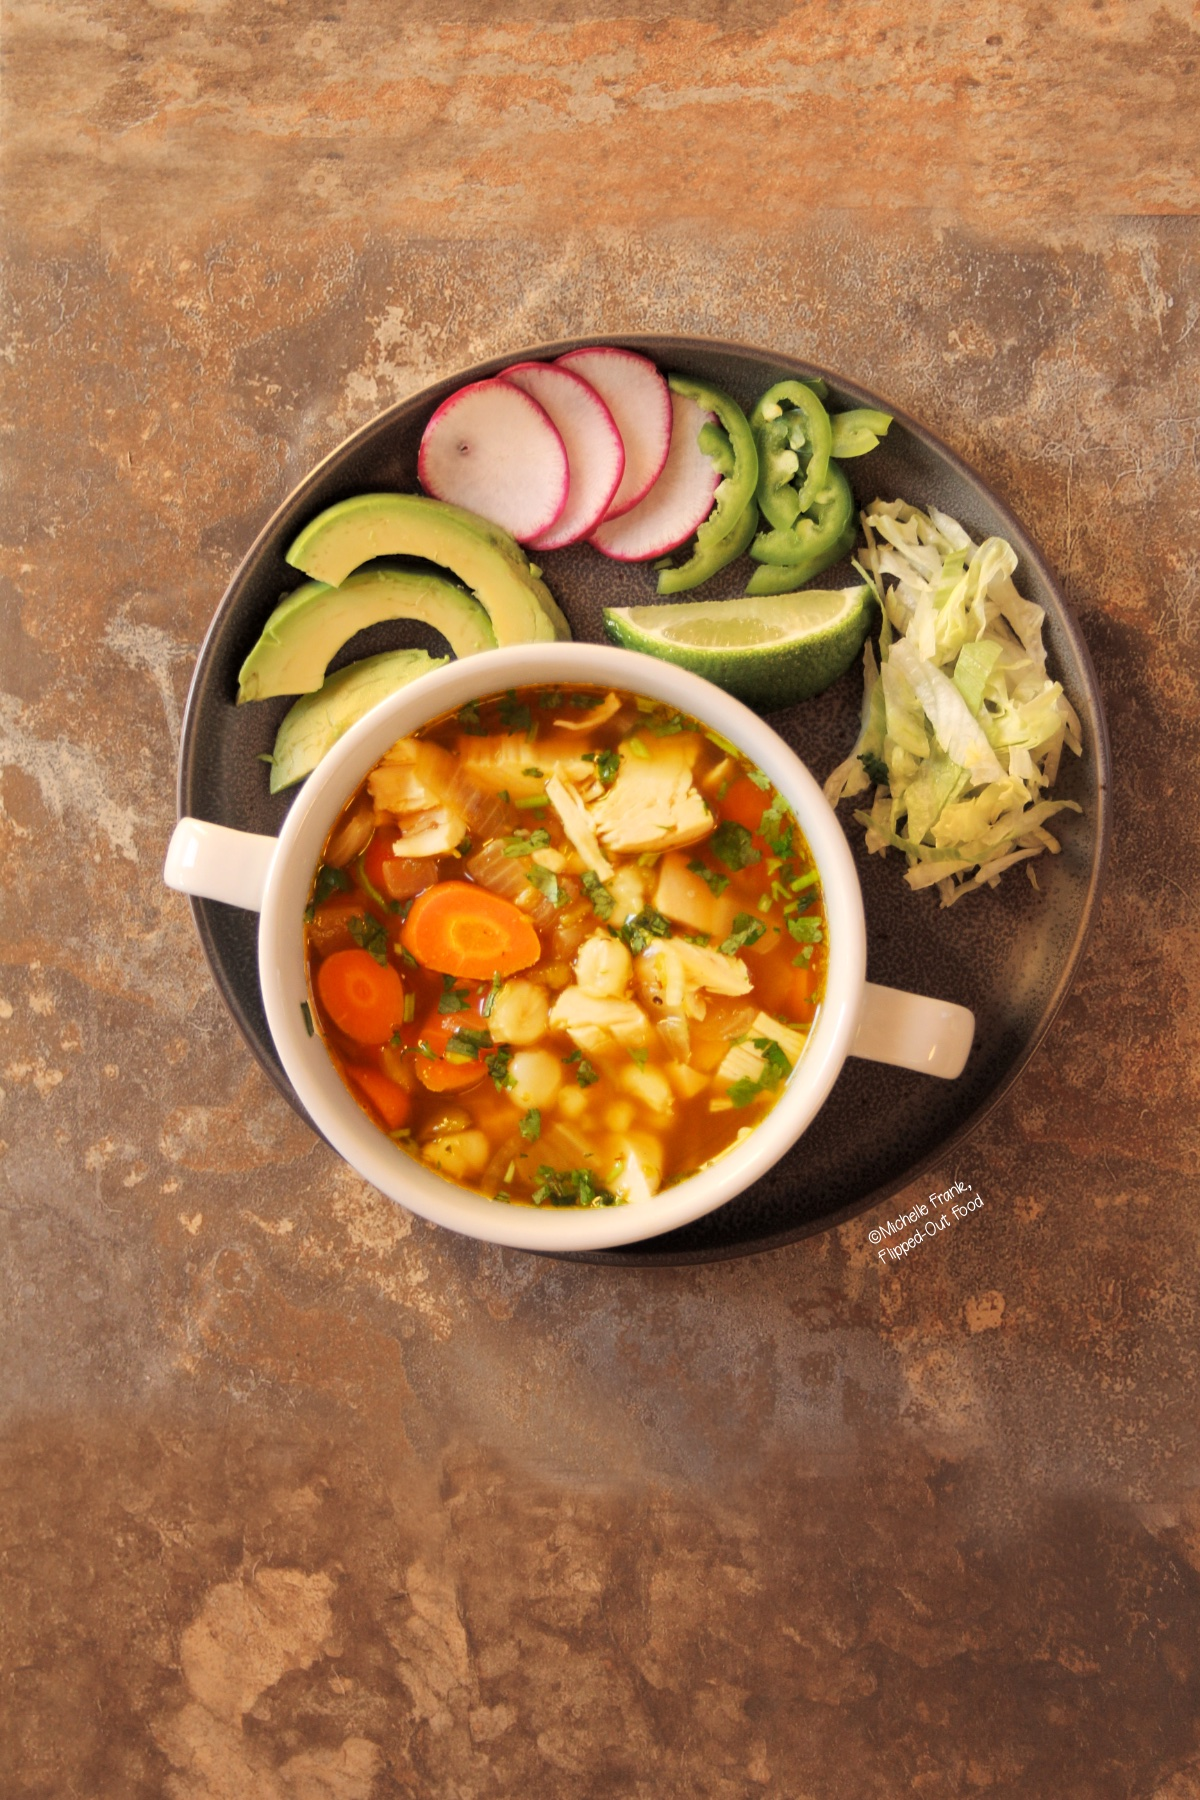 A serving of Green Chile Chicken Pozole in a white, 2-handled bowl. The bowl is set atop a round, grey plate with garnishes including sliced avocados, radishes, jalapenos and lettuce, along with a lime wedge.